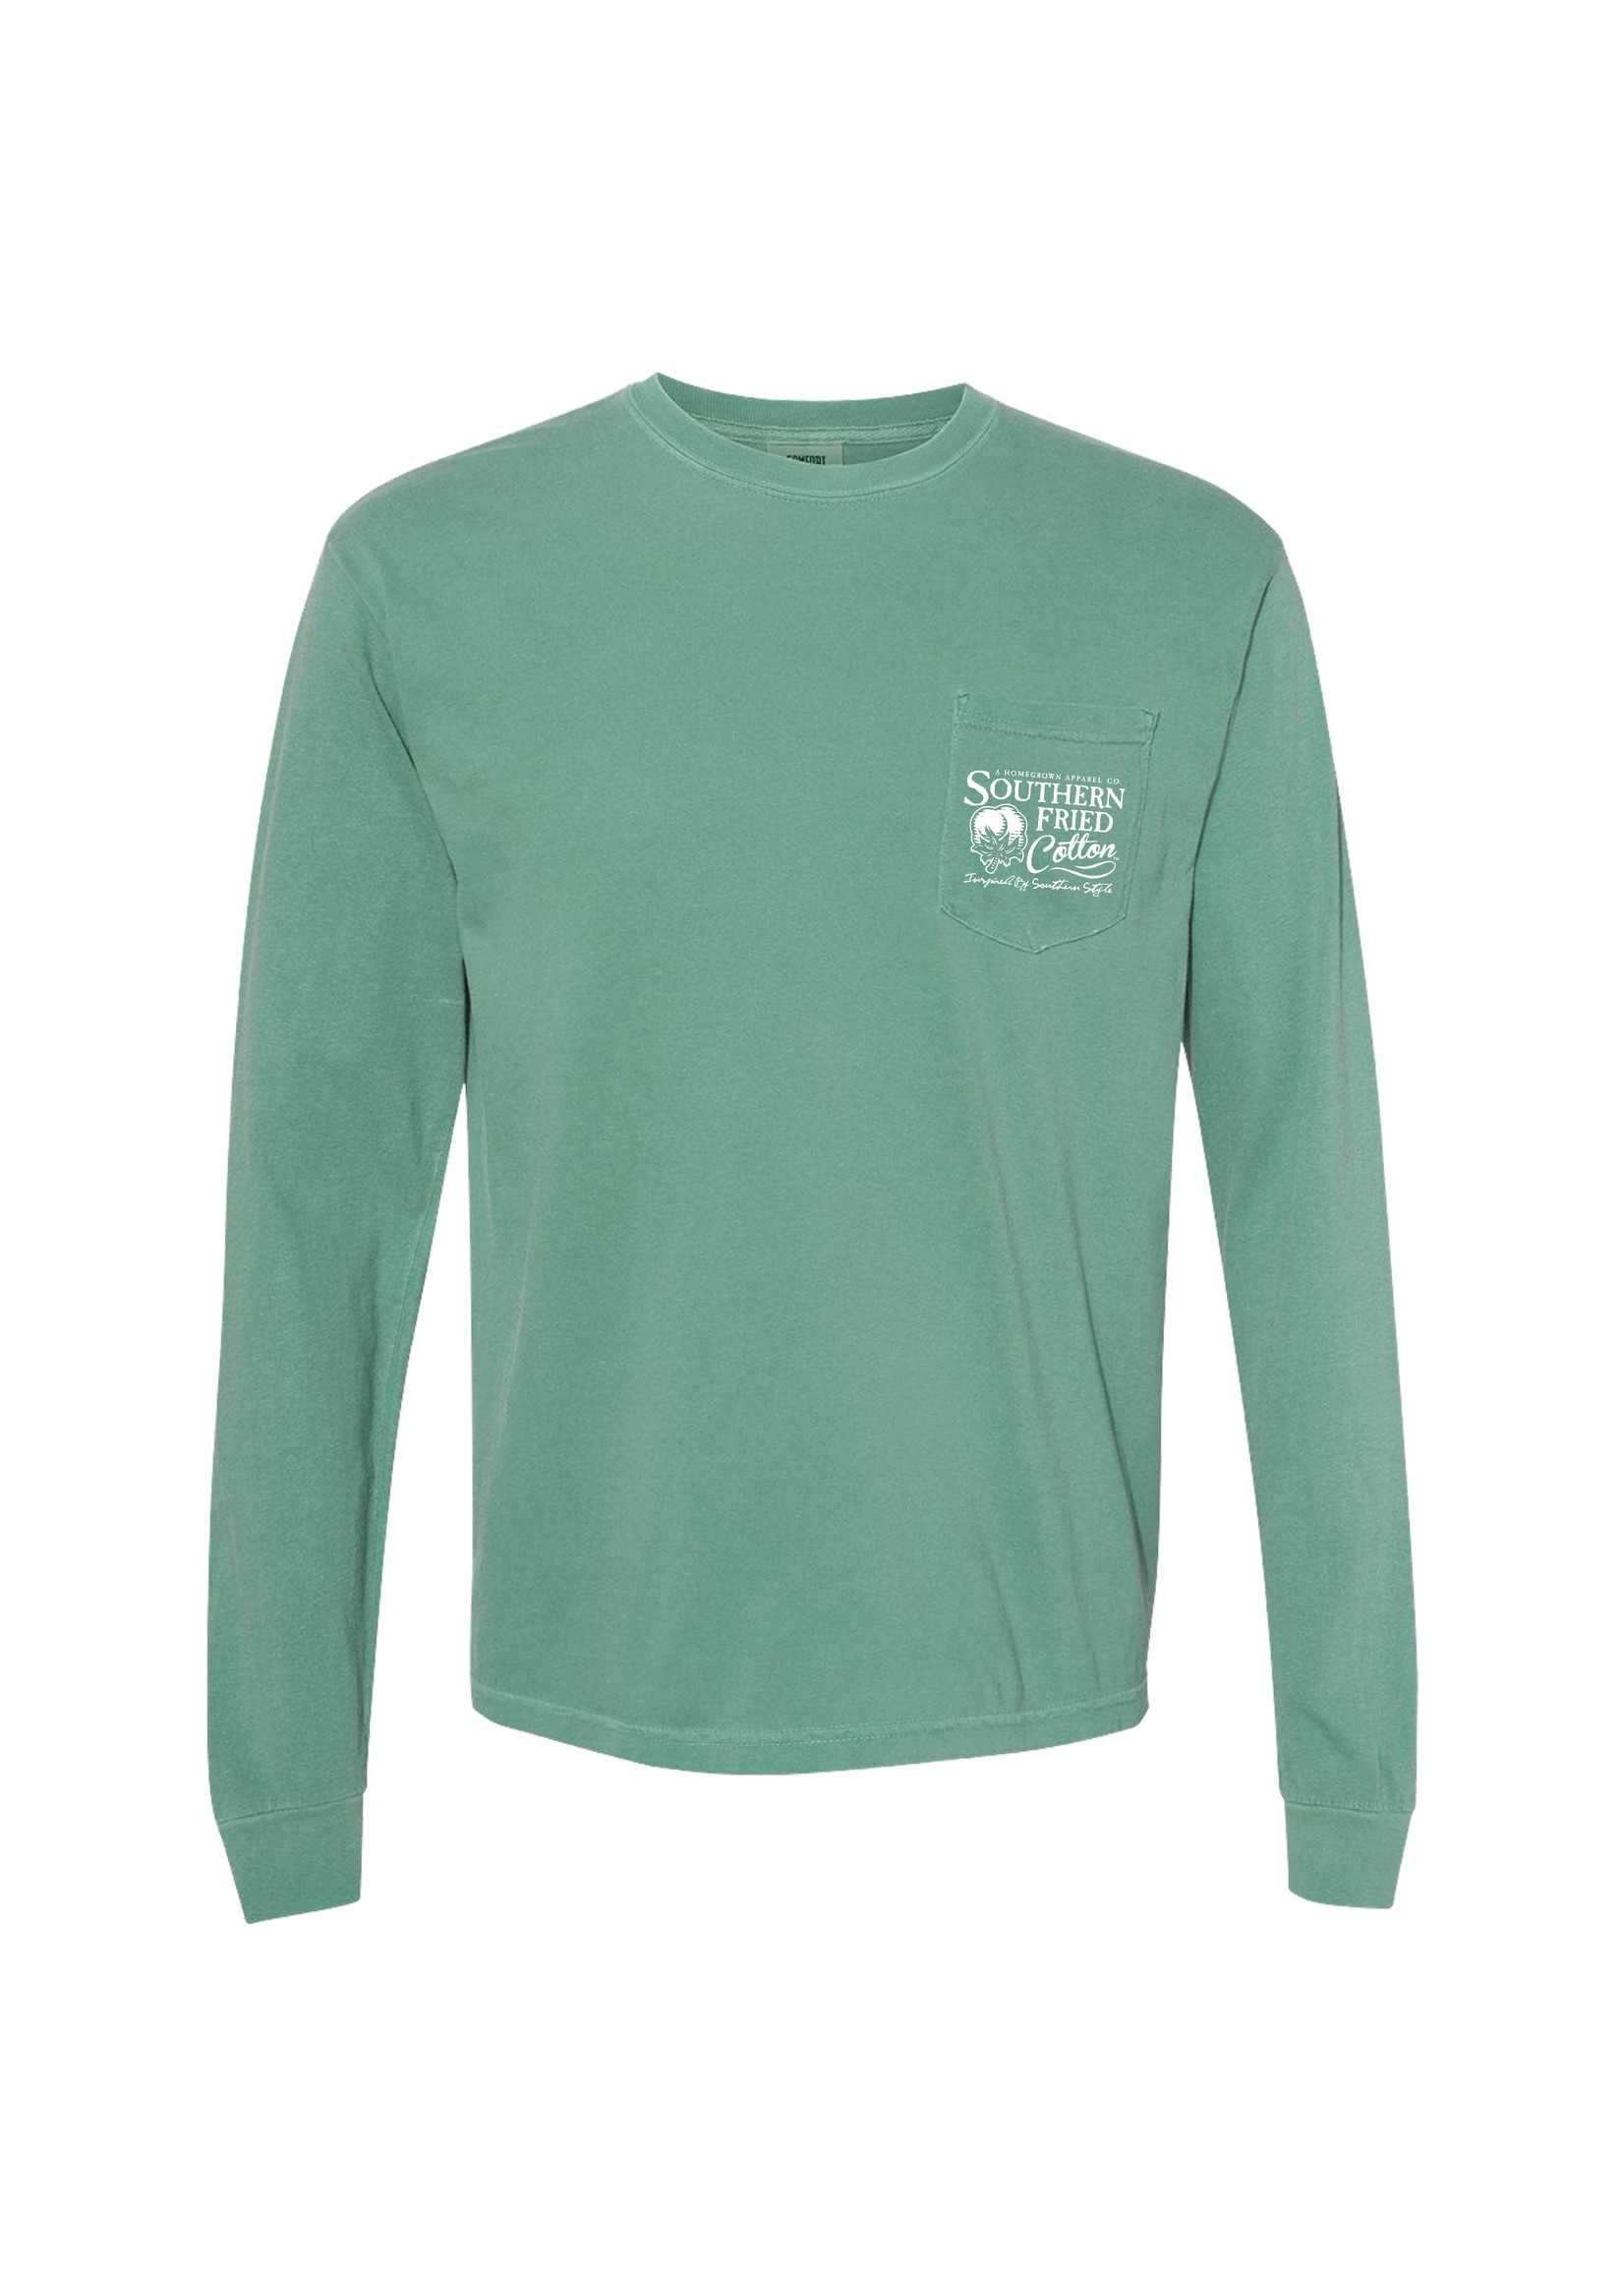 Southern Fried Cotton Born To Hunt - Long Sleeve